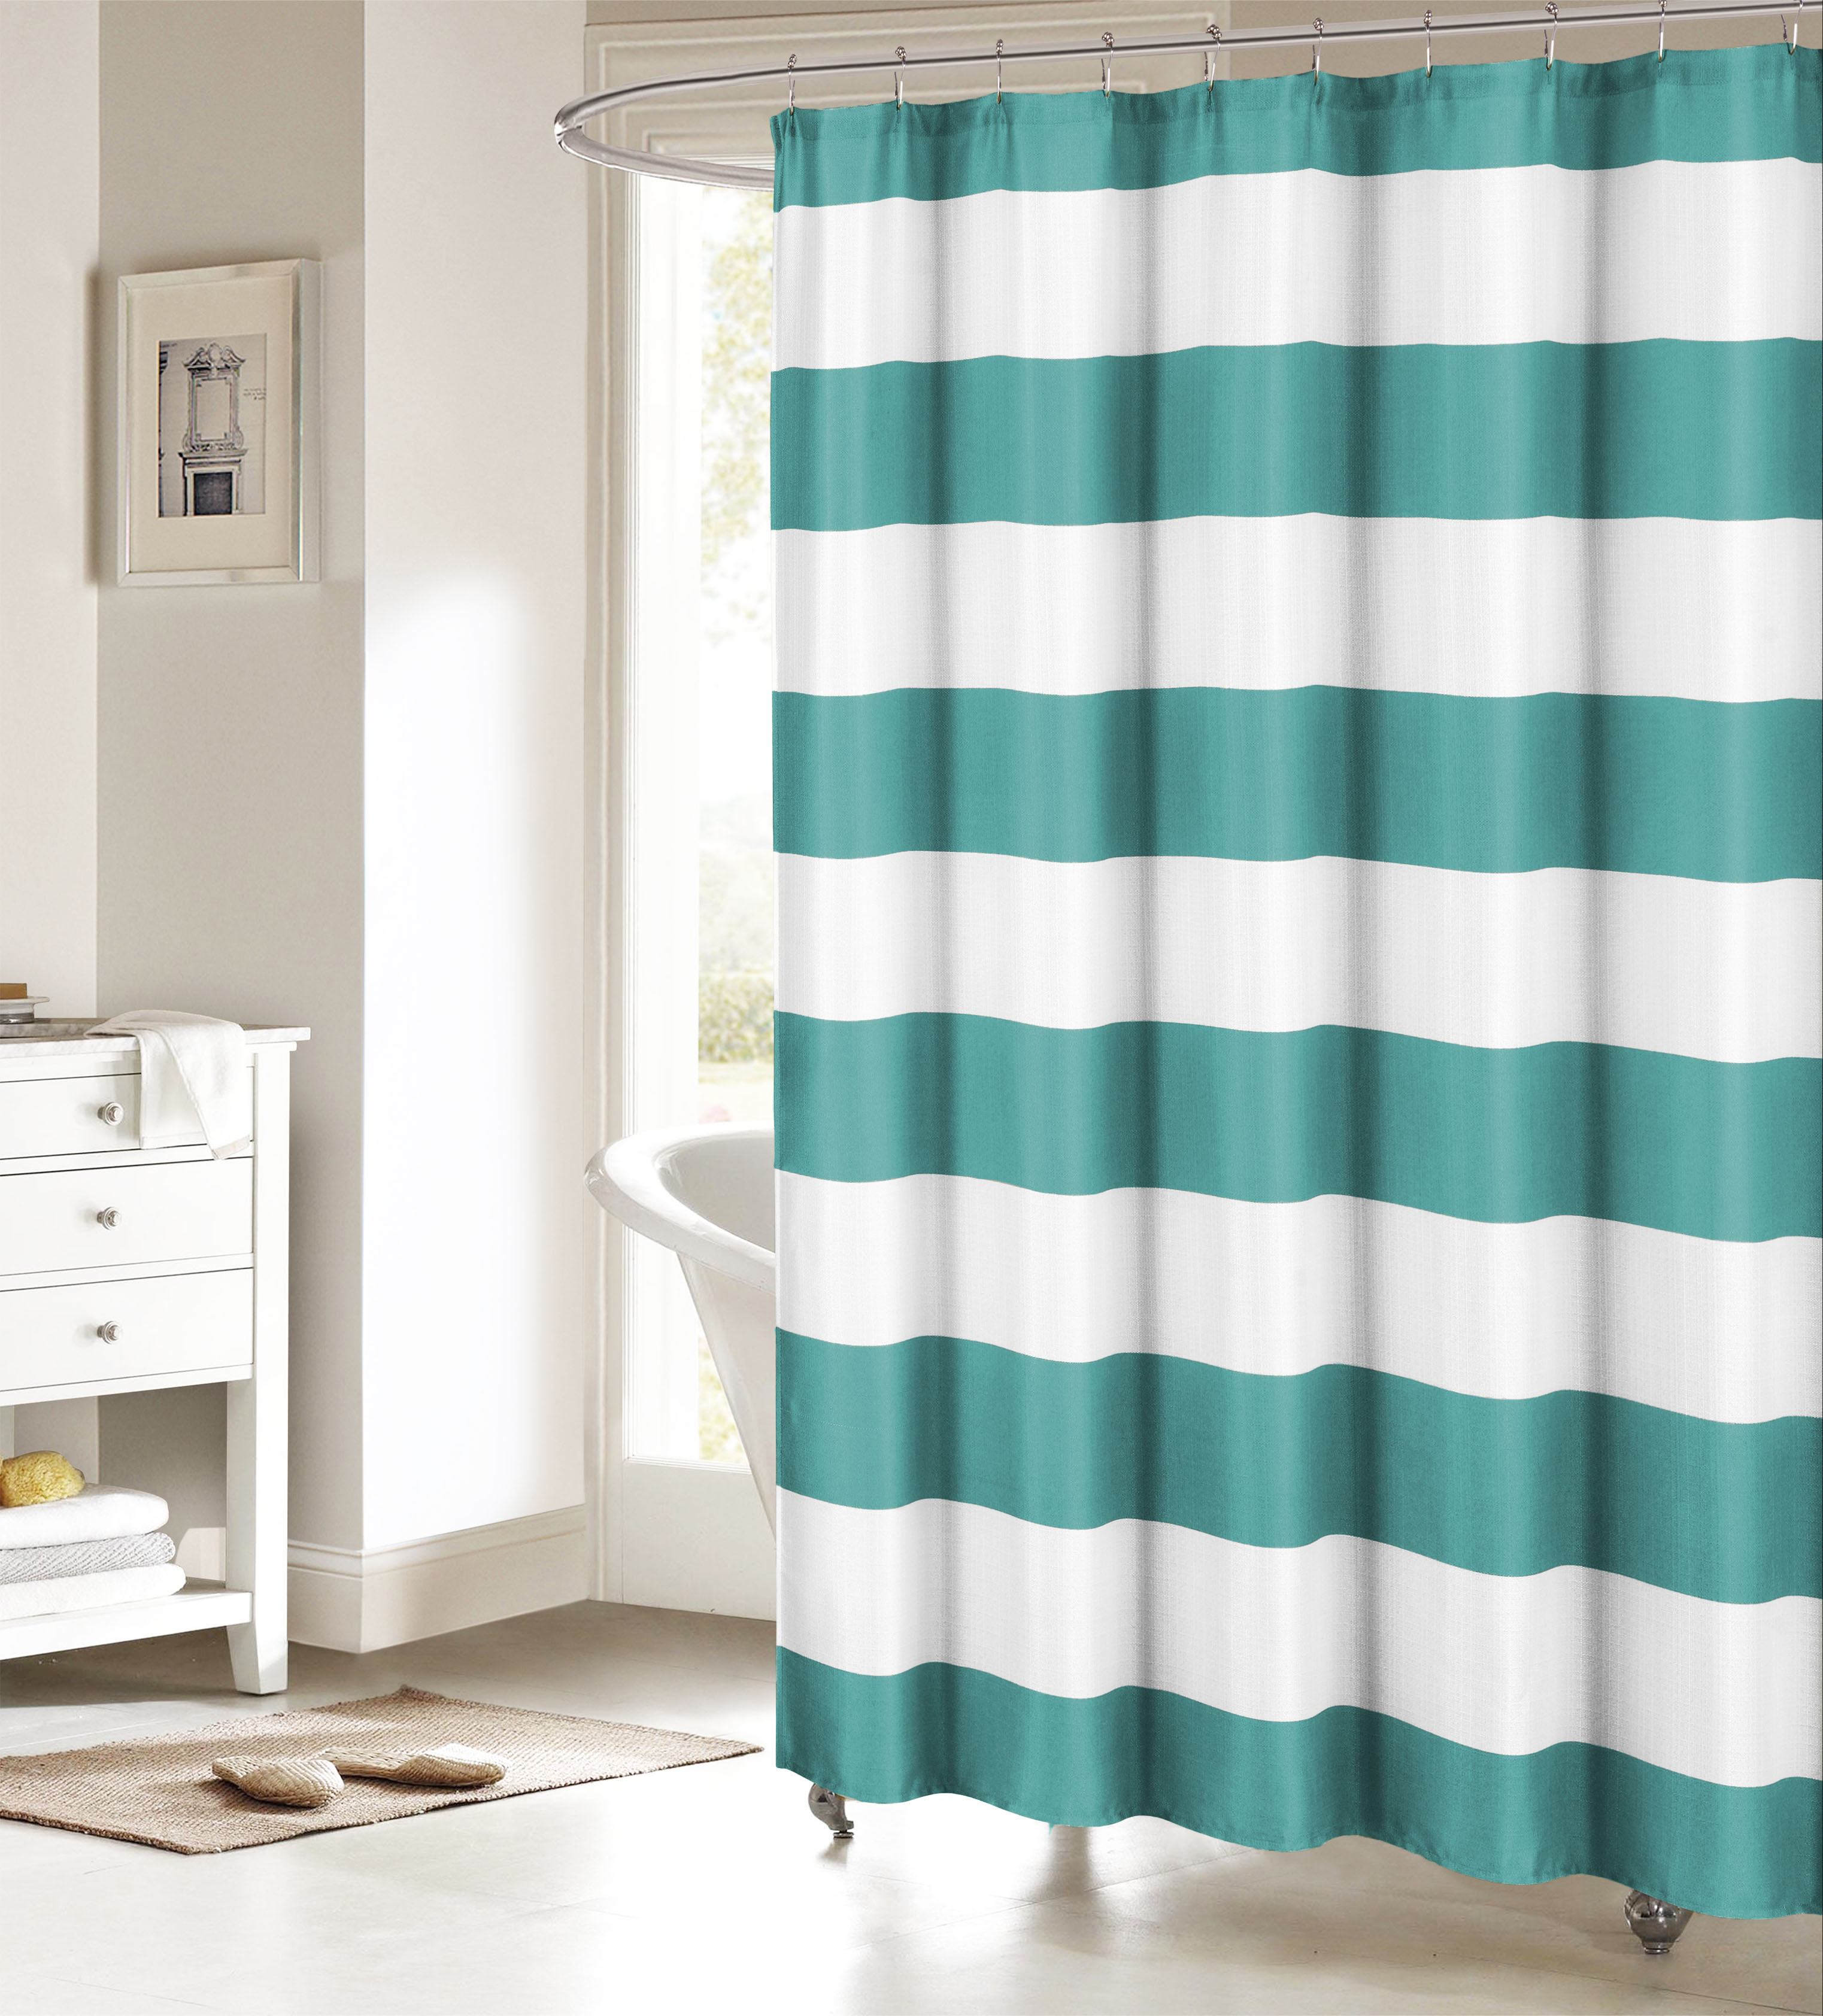 Teal and White Fabric Shower Curtain: Nautical Stripe ...